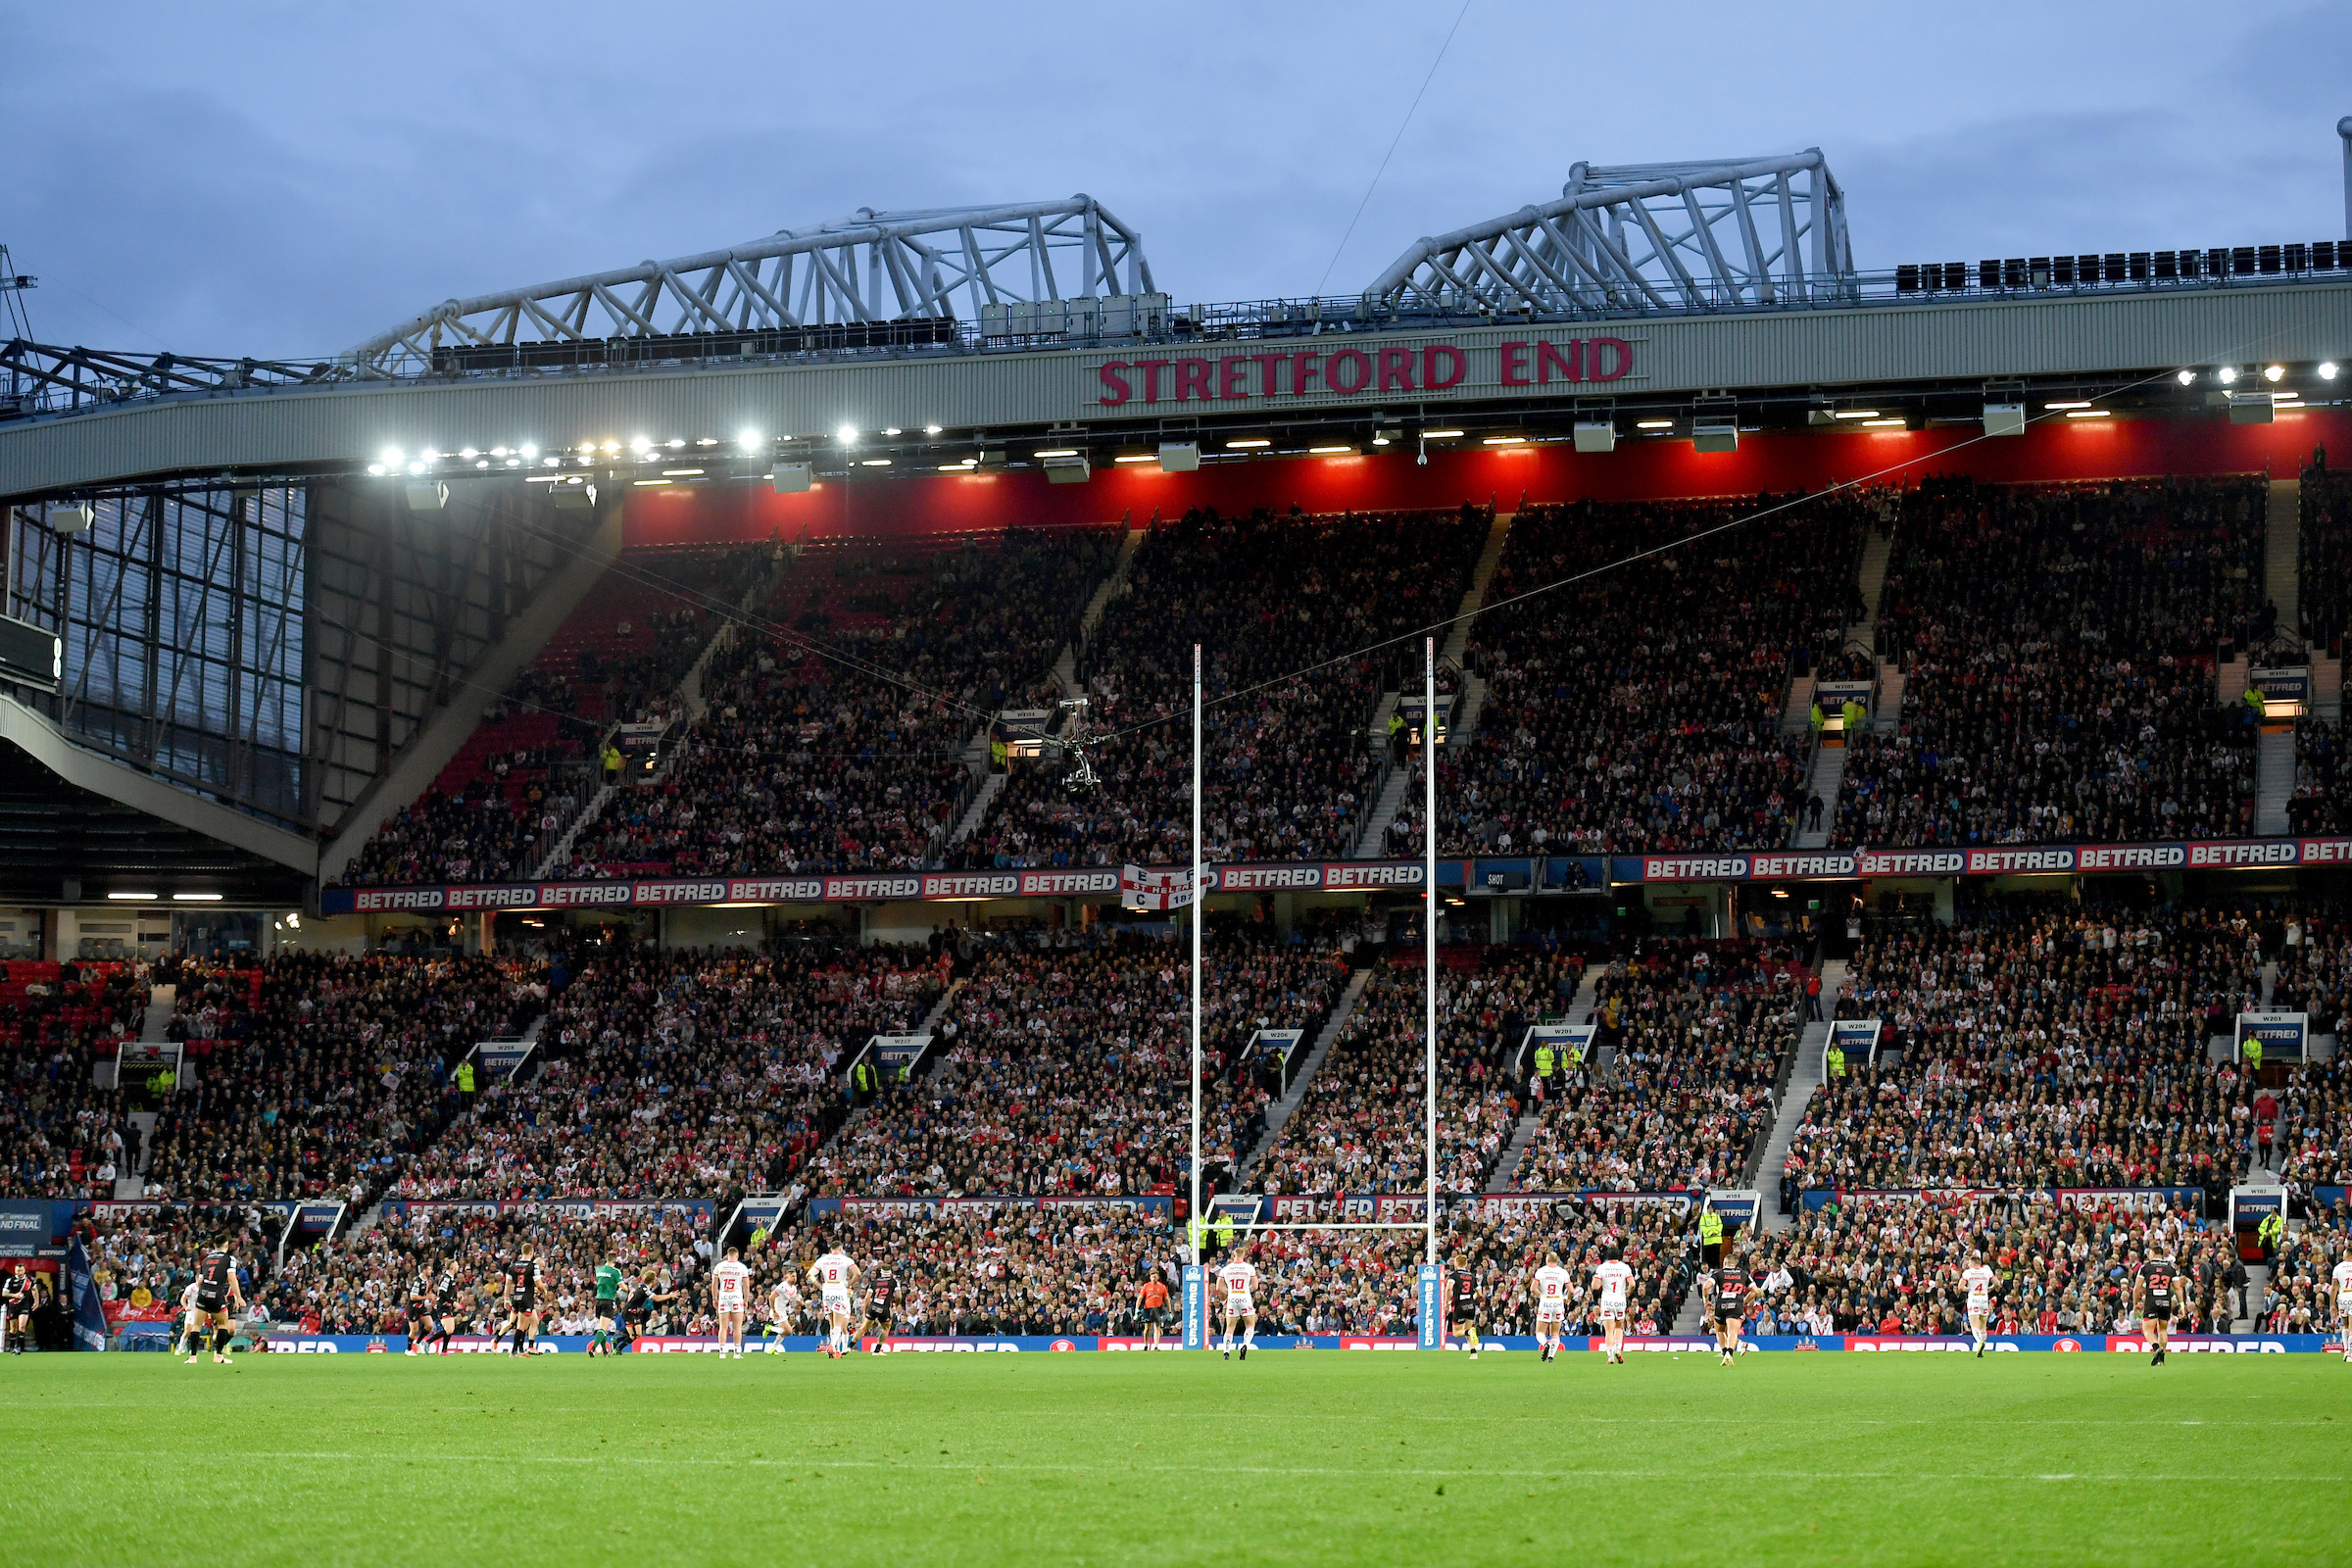 Leaked plans of Super League return in August, Grand Final could be in January 2021